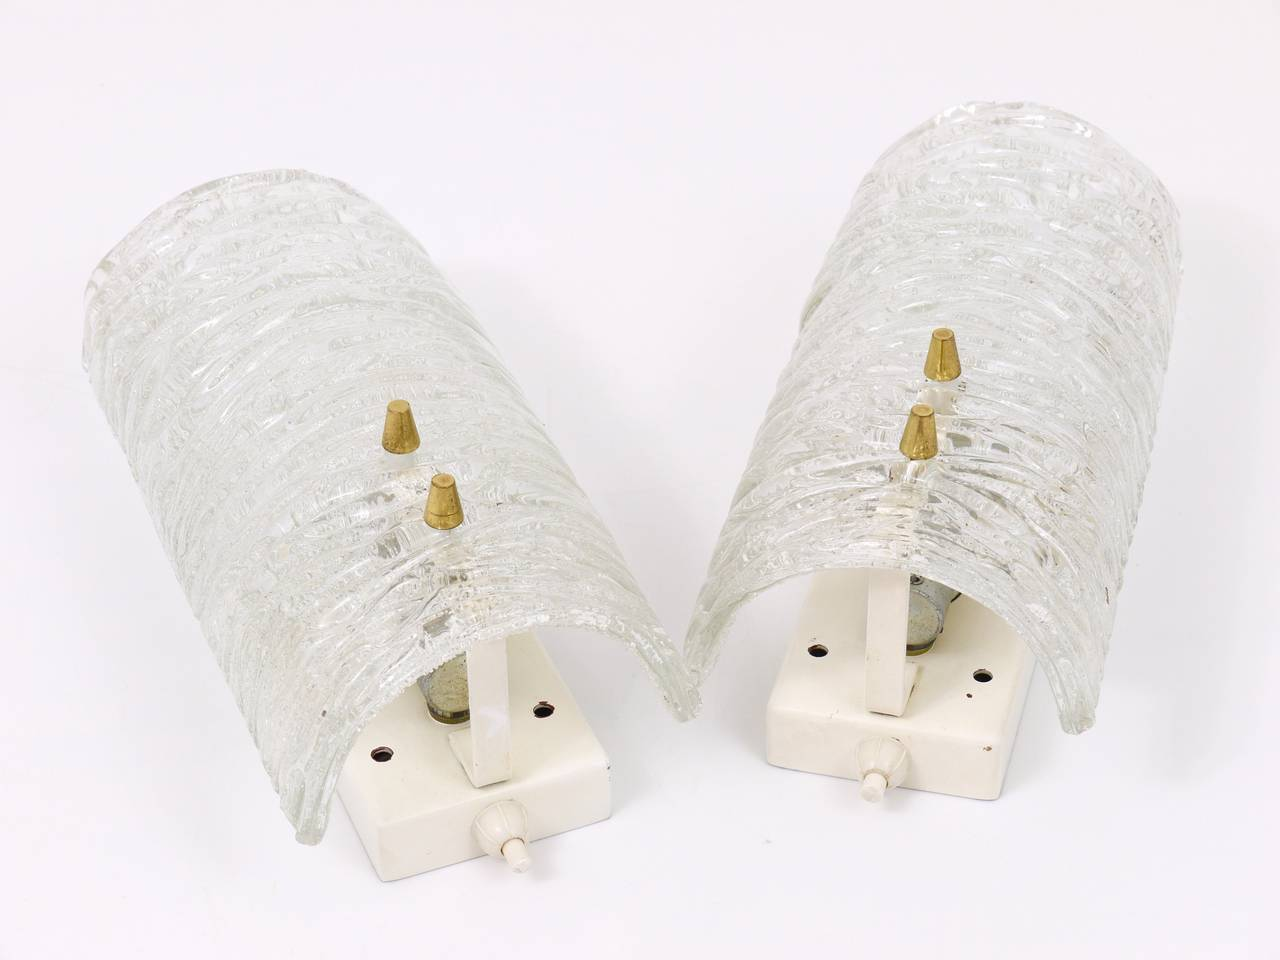 Pair of Mid-Century Kalmar Brass Glass Sconces Wall Lamps, Austria, 1950s 10